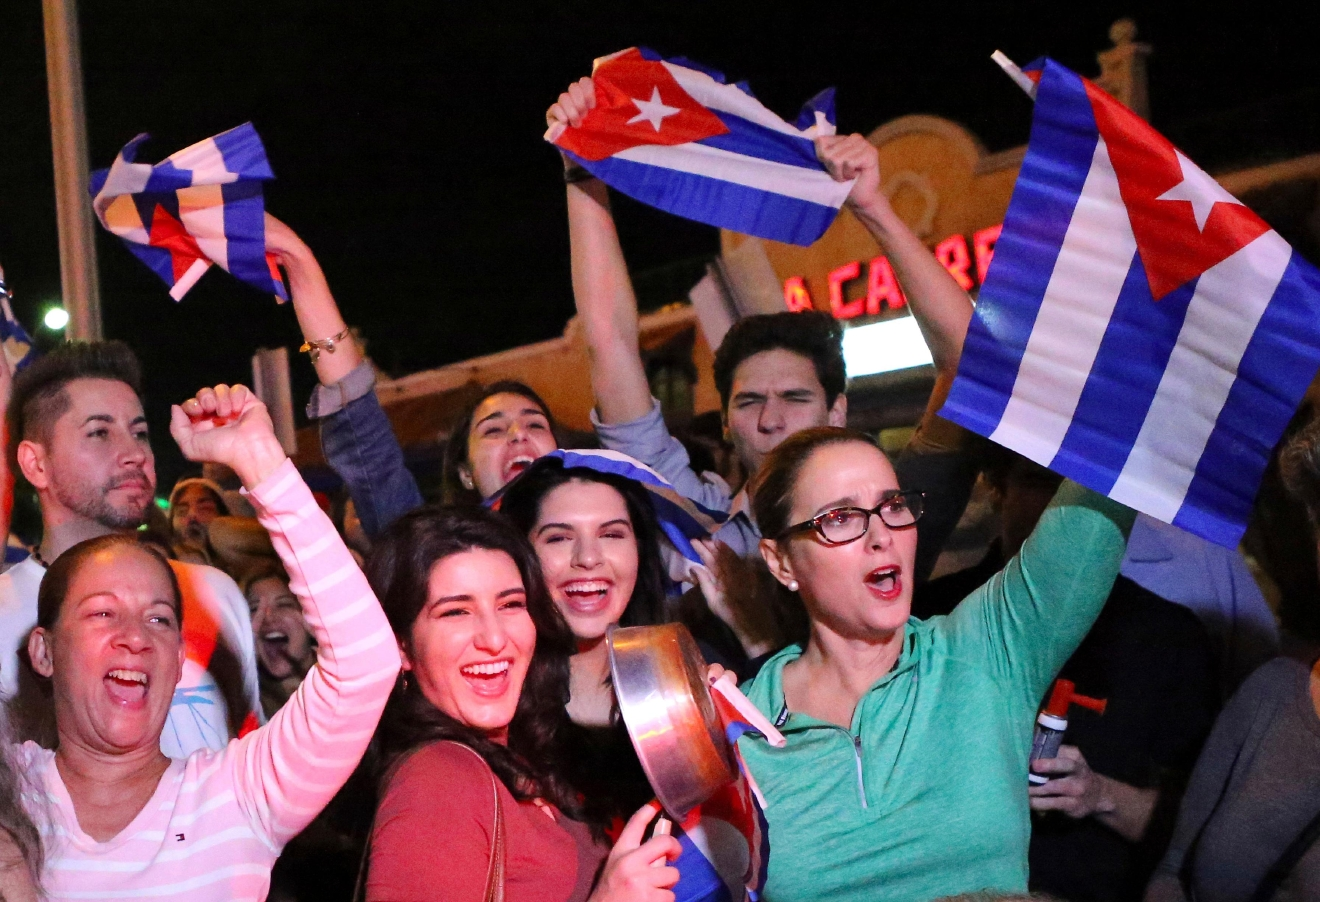 FILE- In this Nov. 25, 2016, file photo, the Cuban community in Miami celebrates the announcement that Fidel Castro died in front La Carreta Restaurant early in Miami.  (David Santiago/El Nuevo Herald via AP, File)